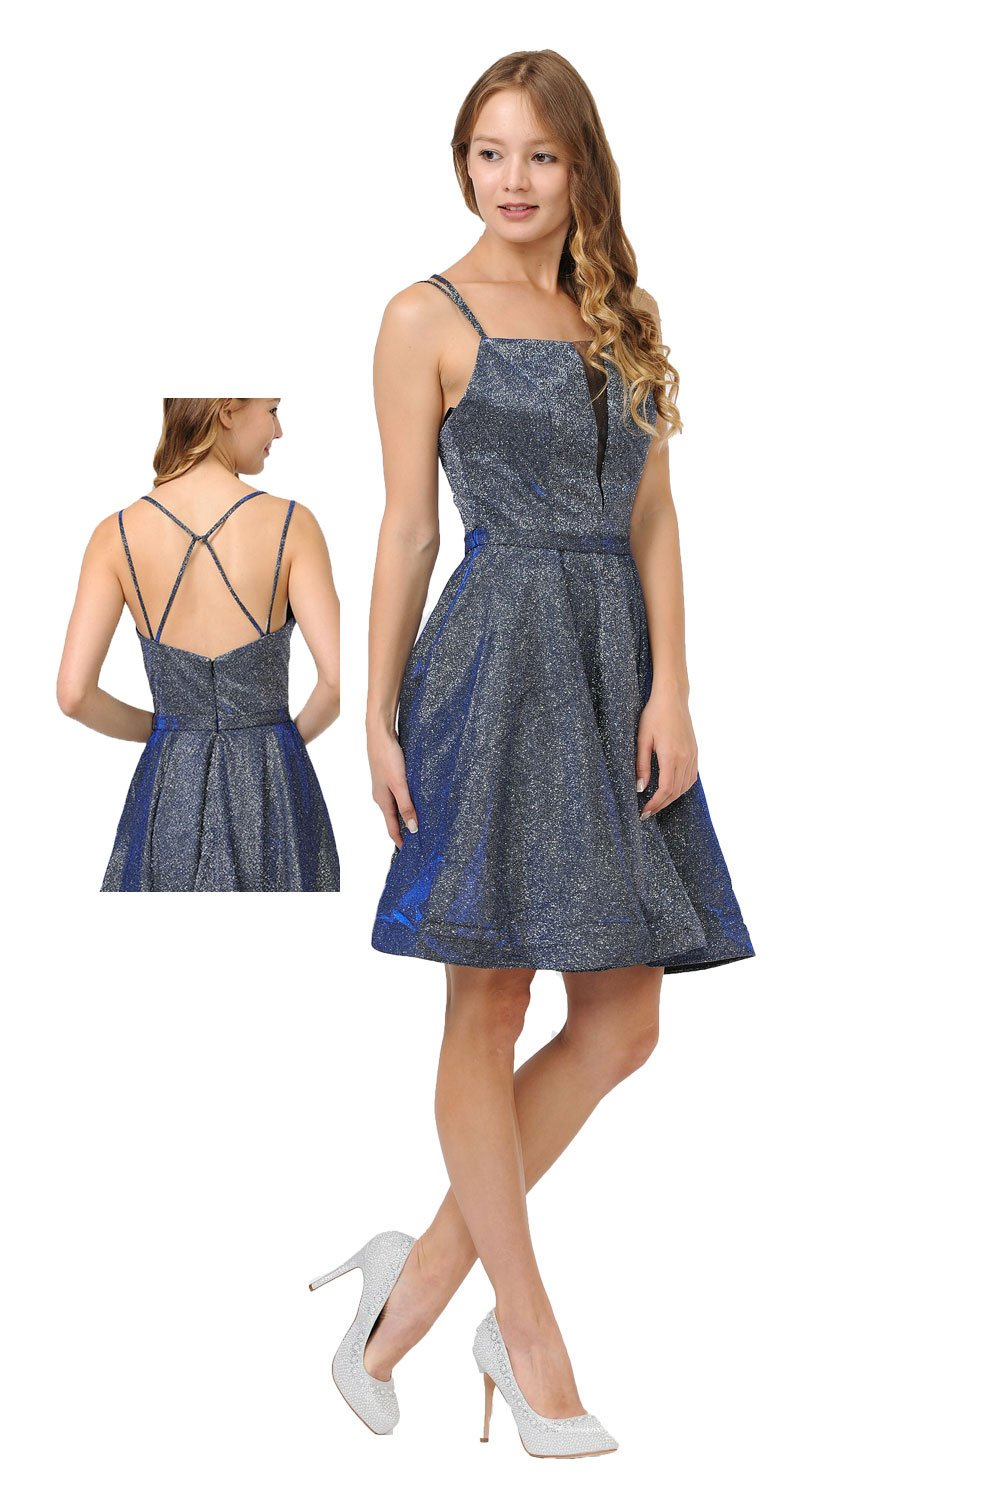 Royal metallic short dress with plunging V-neckline